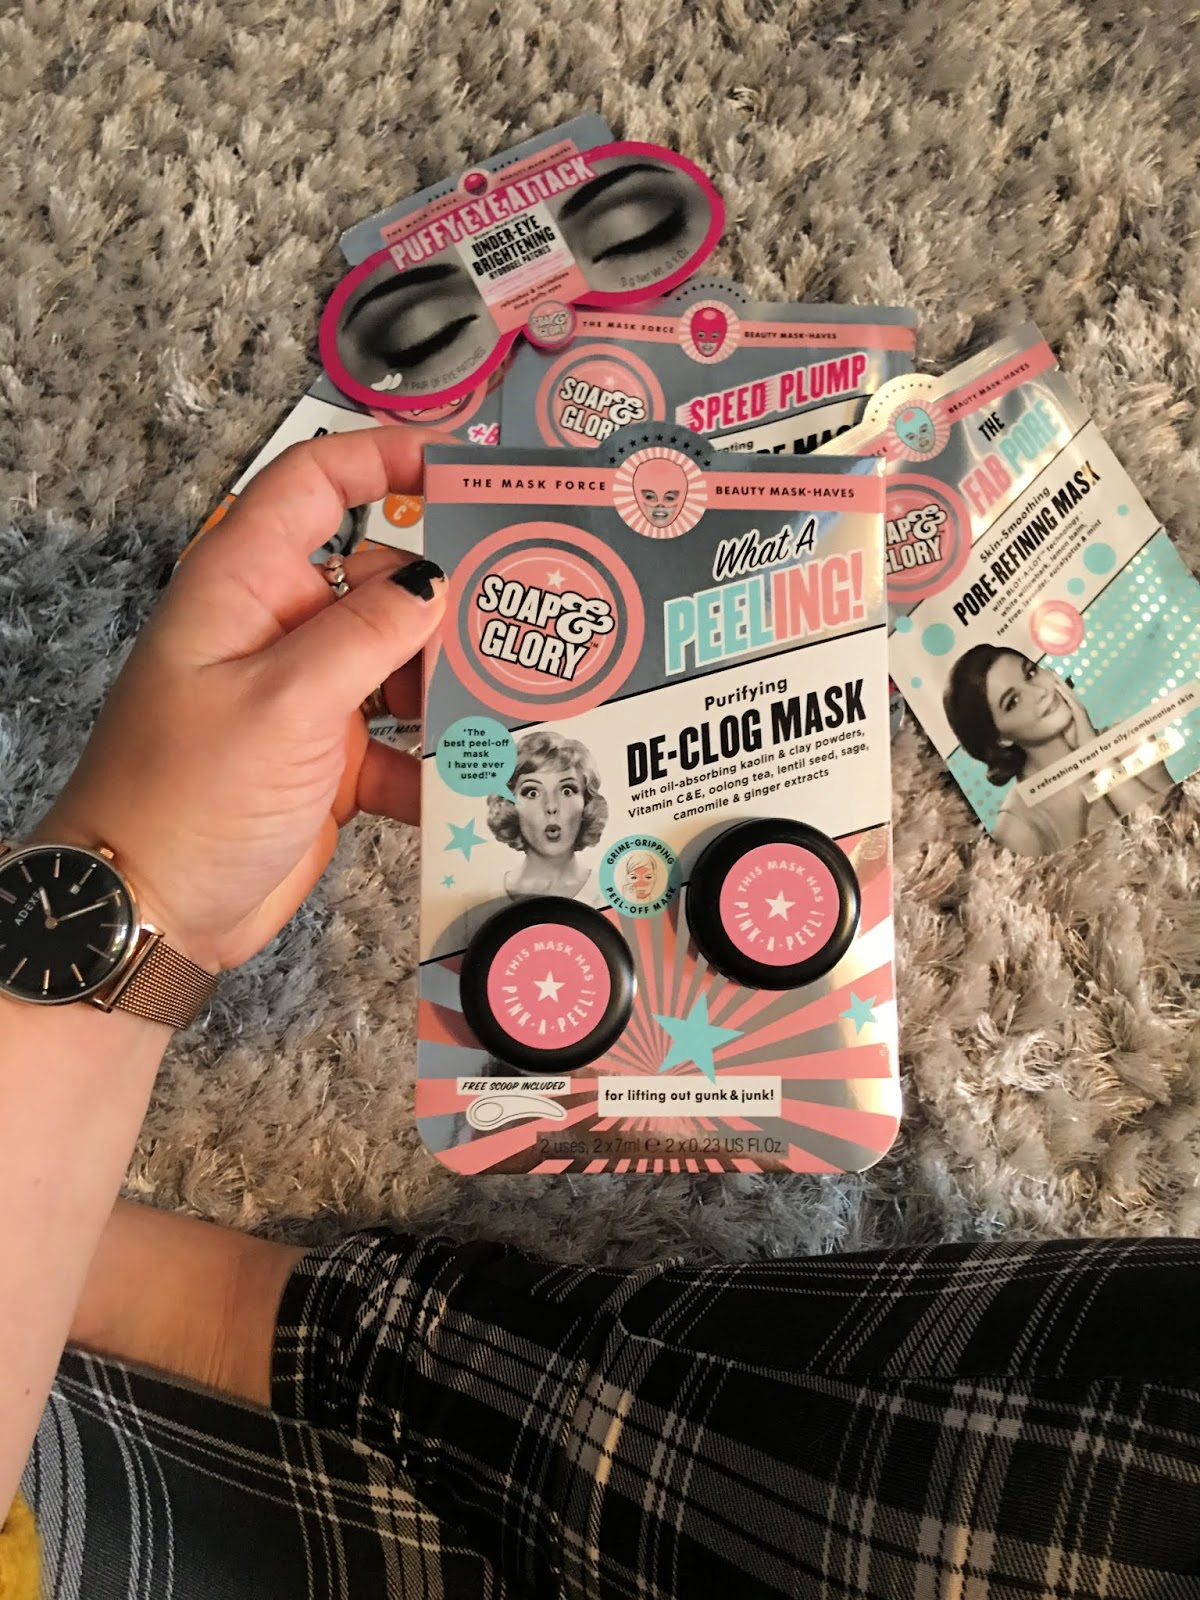 Soap & Glory what a peeling! De - Clog Mask